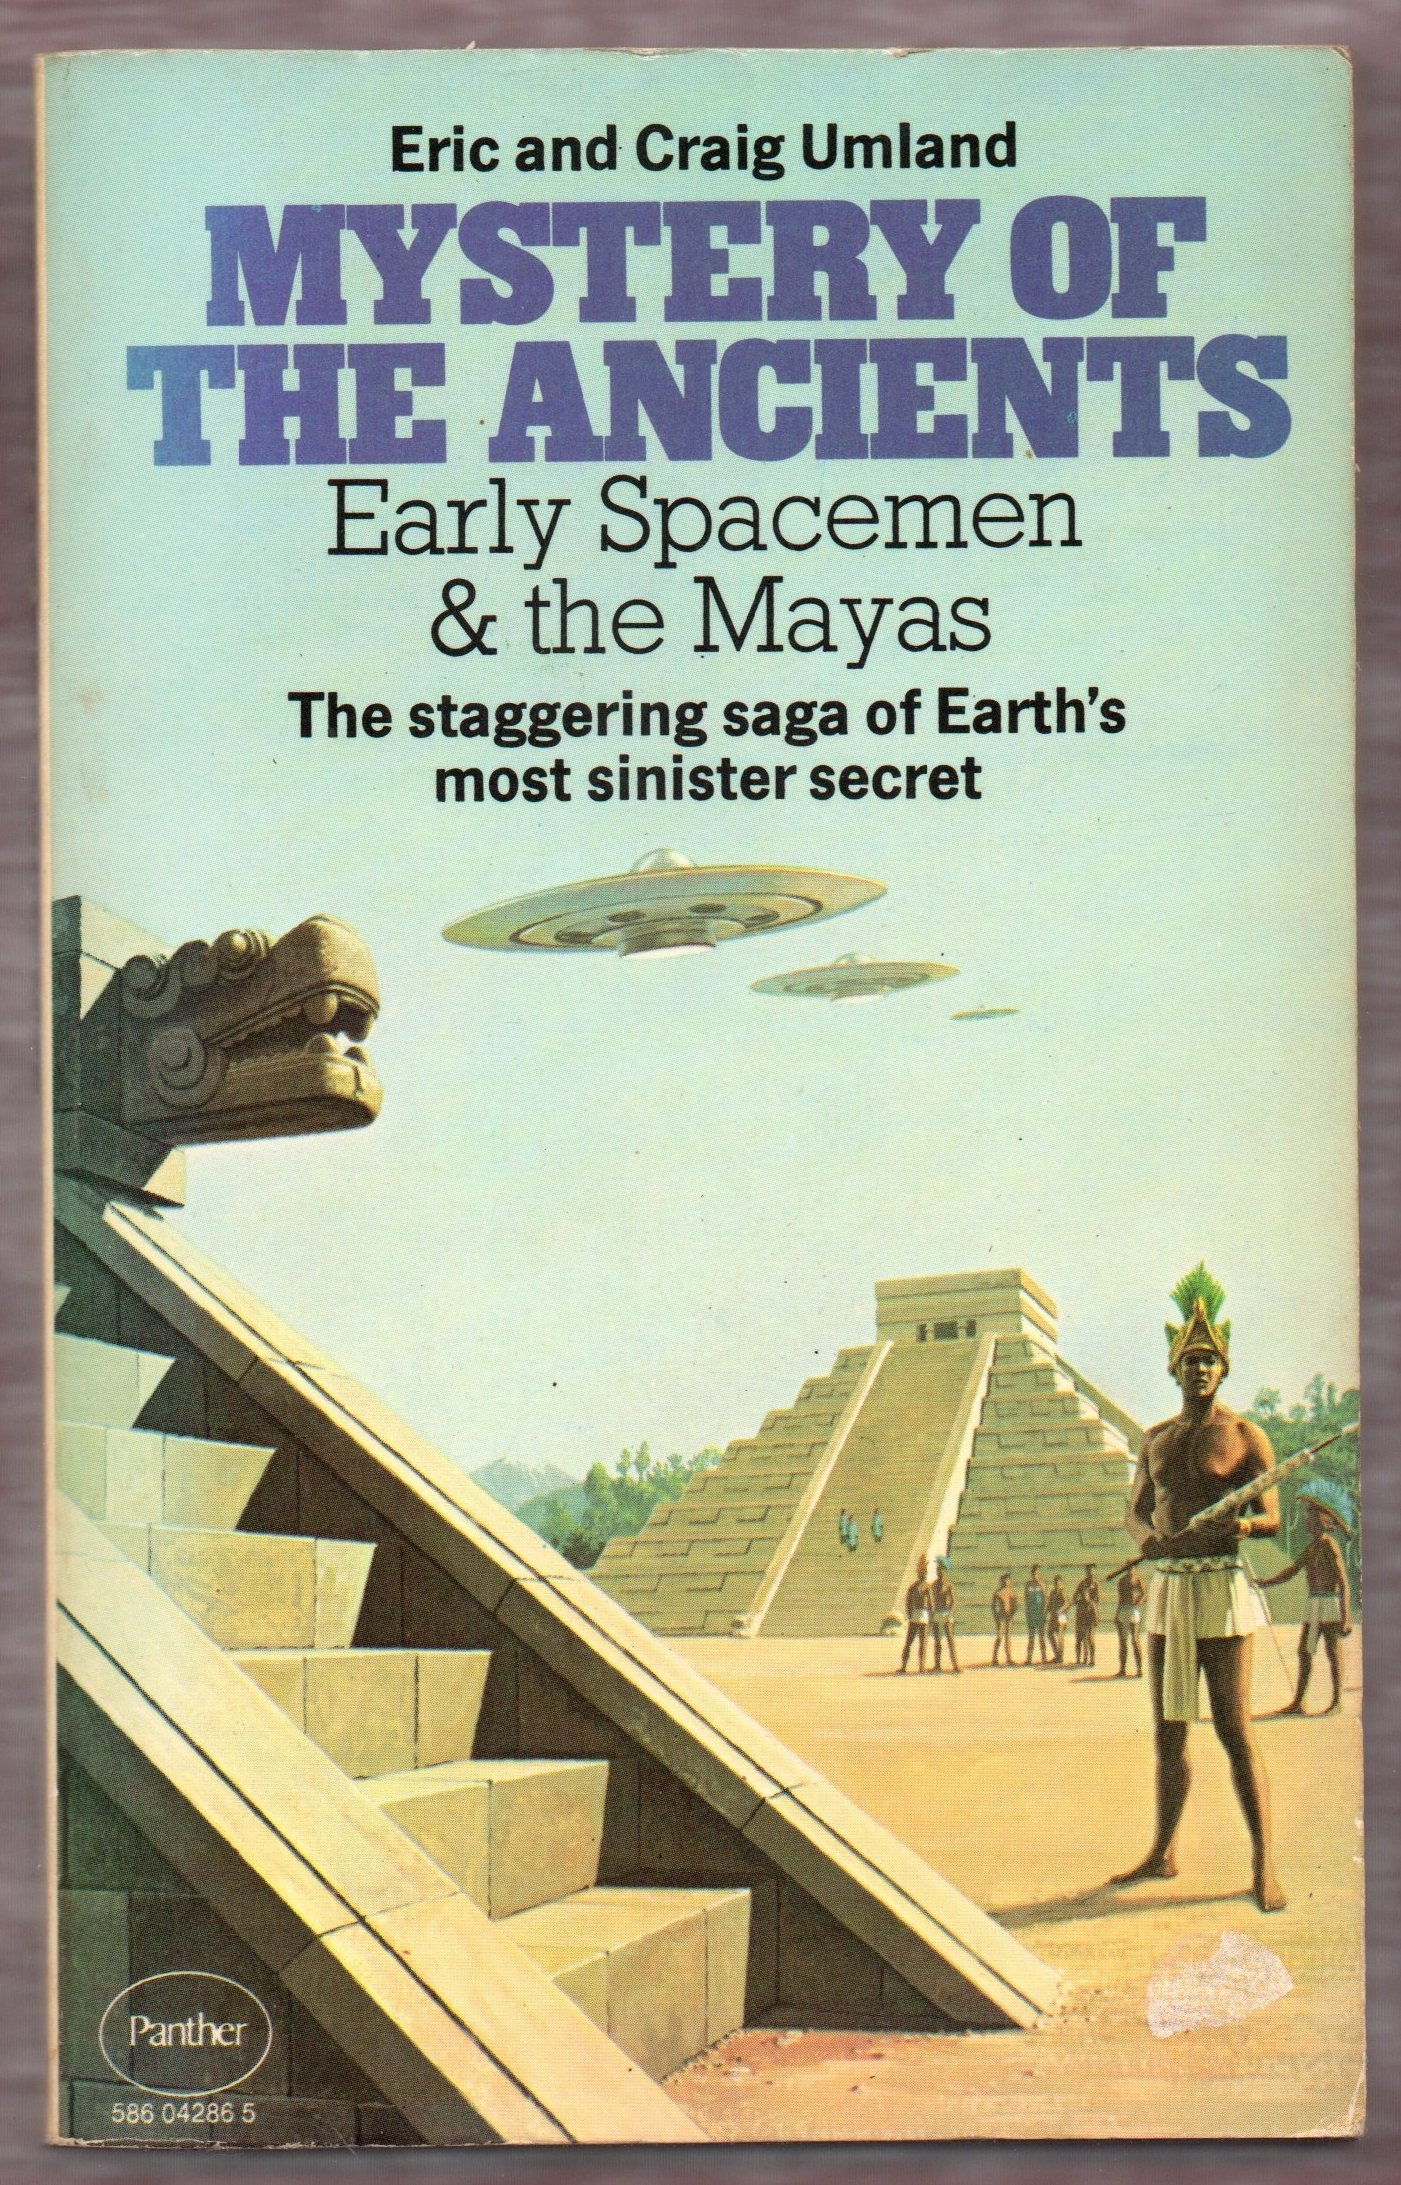 Mystery of the Ancients: Early Spacemen and the Mayas